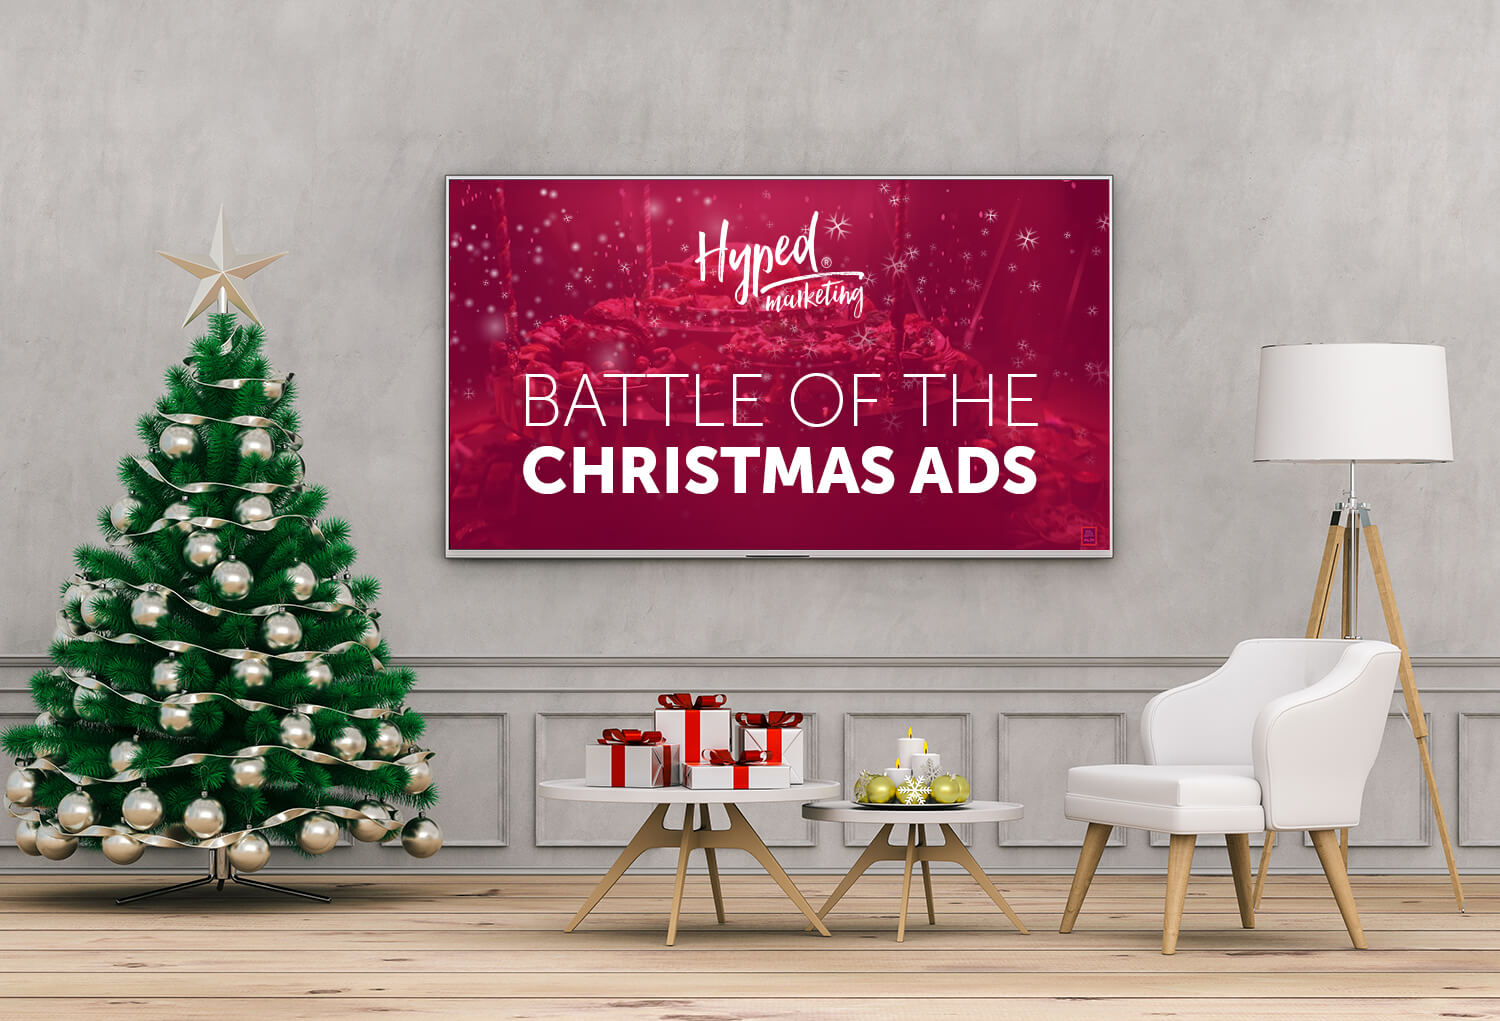 Battle of Christmas Ads